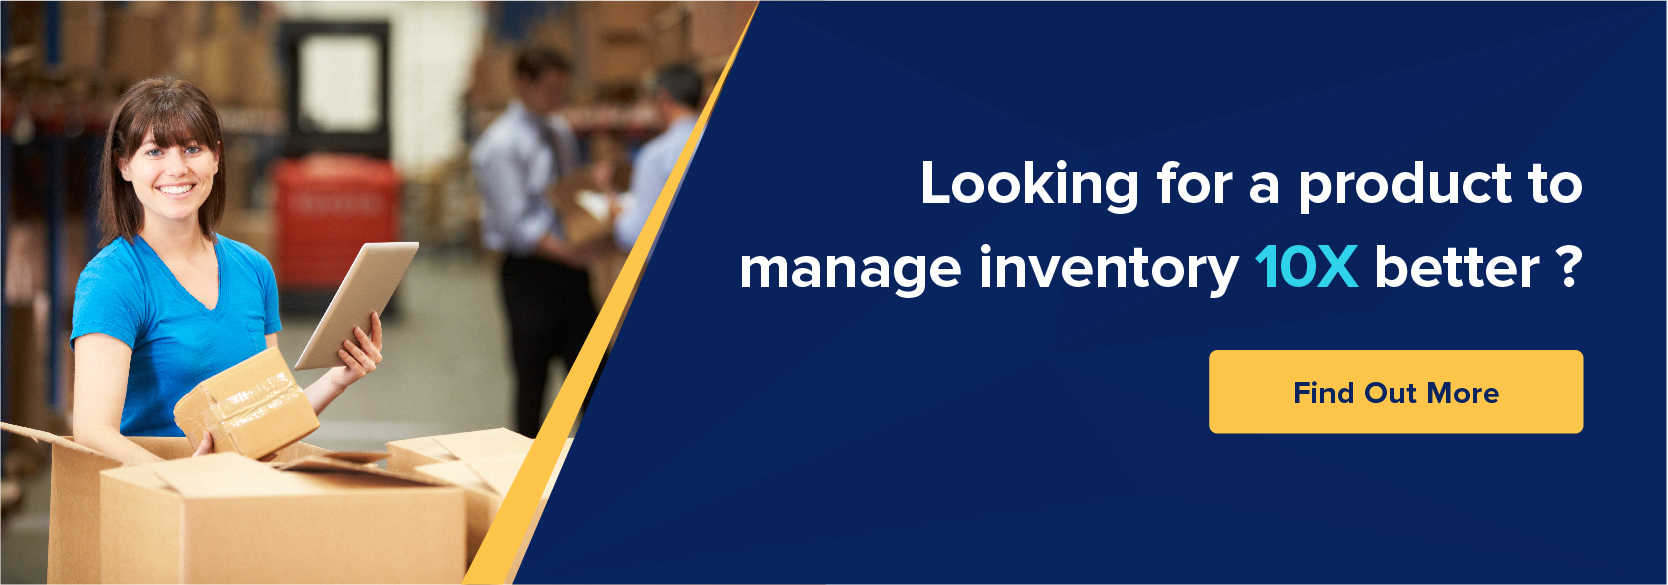 manage-inventory-10x-better